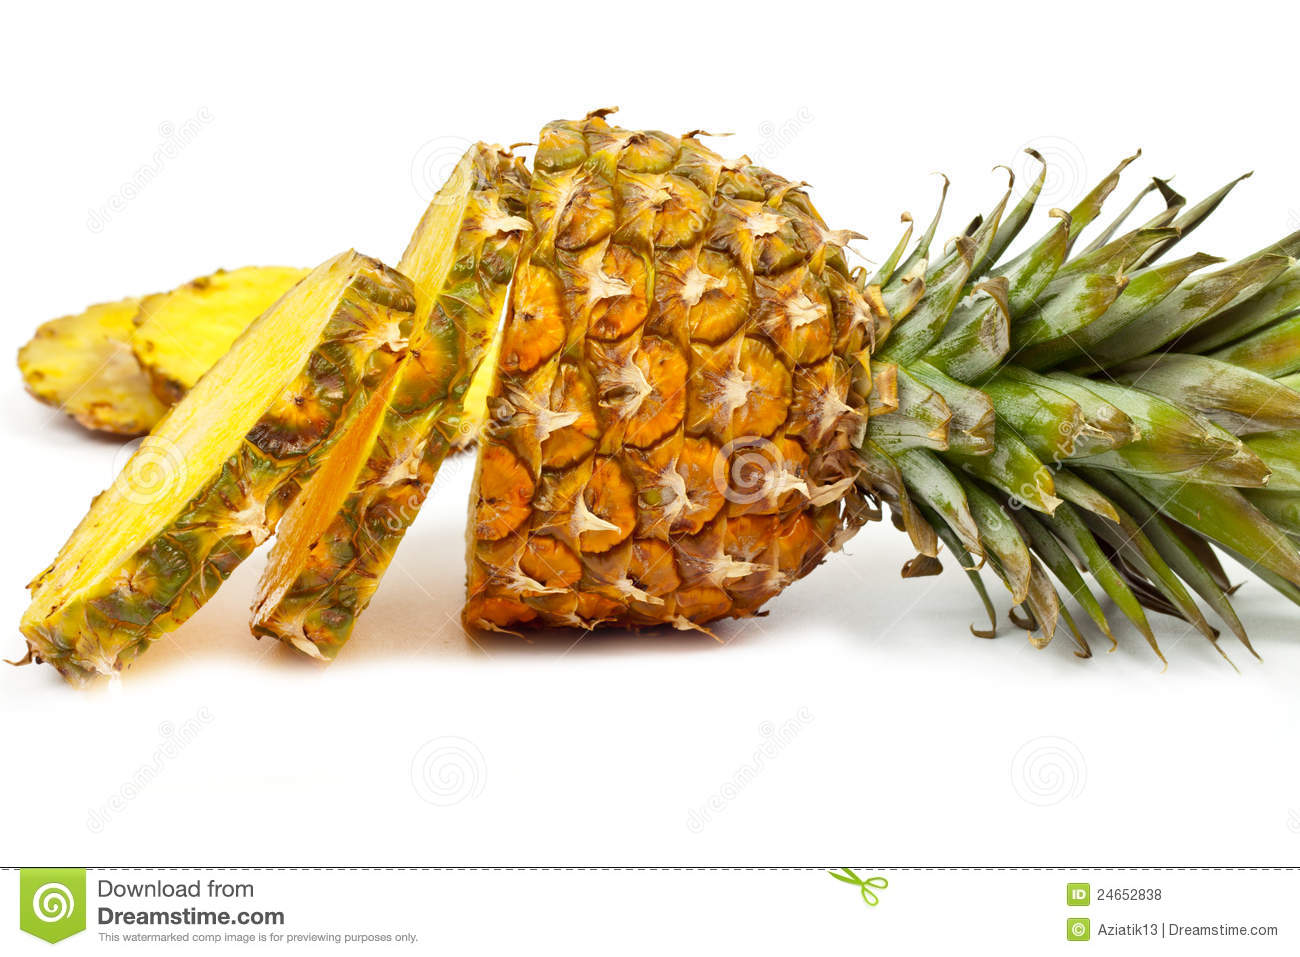 how to choose the best pineapple